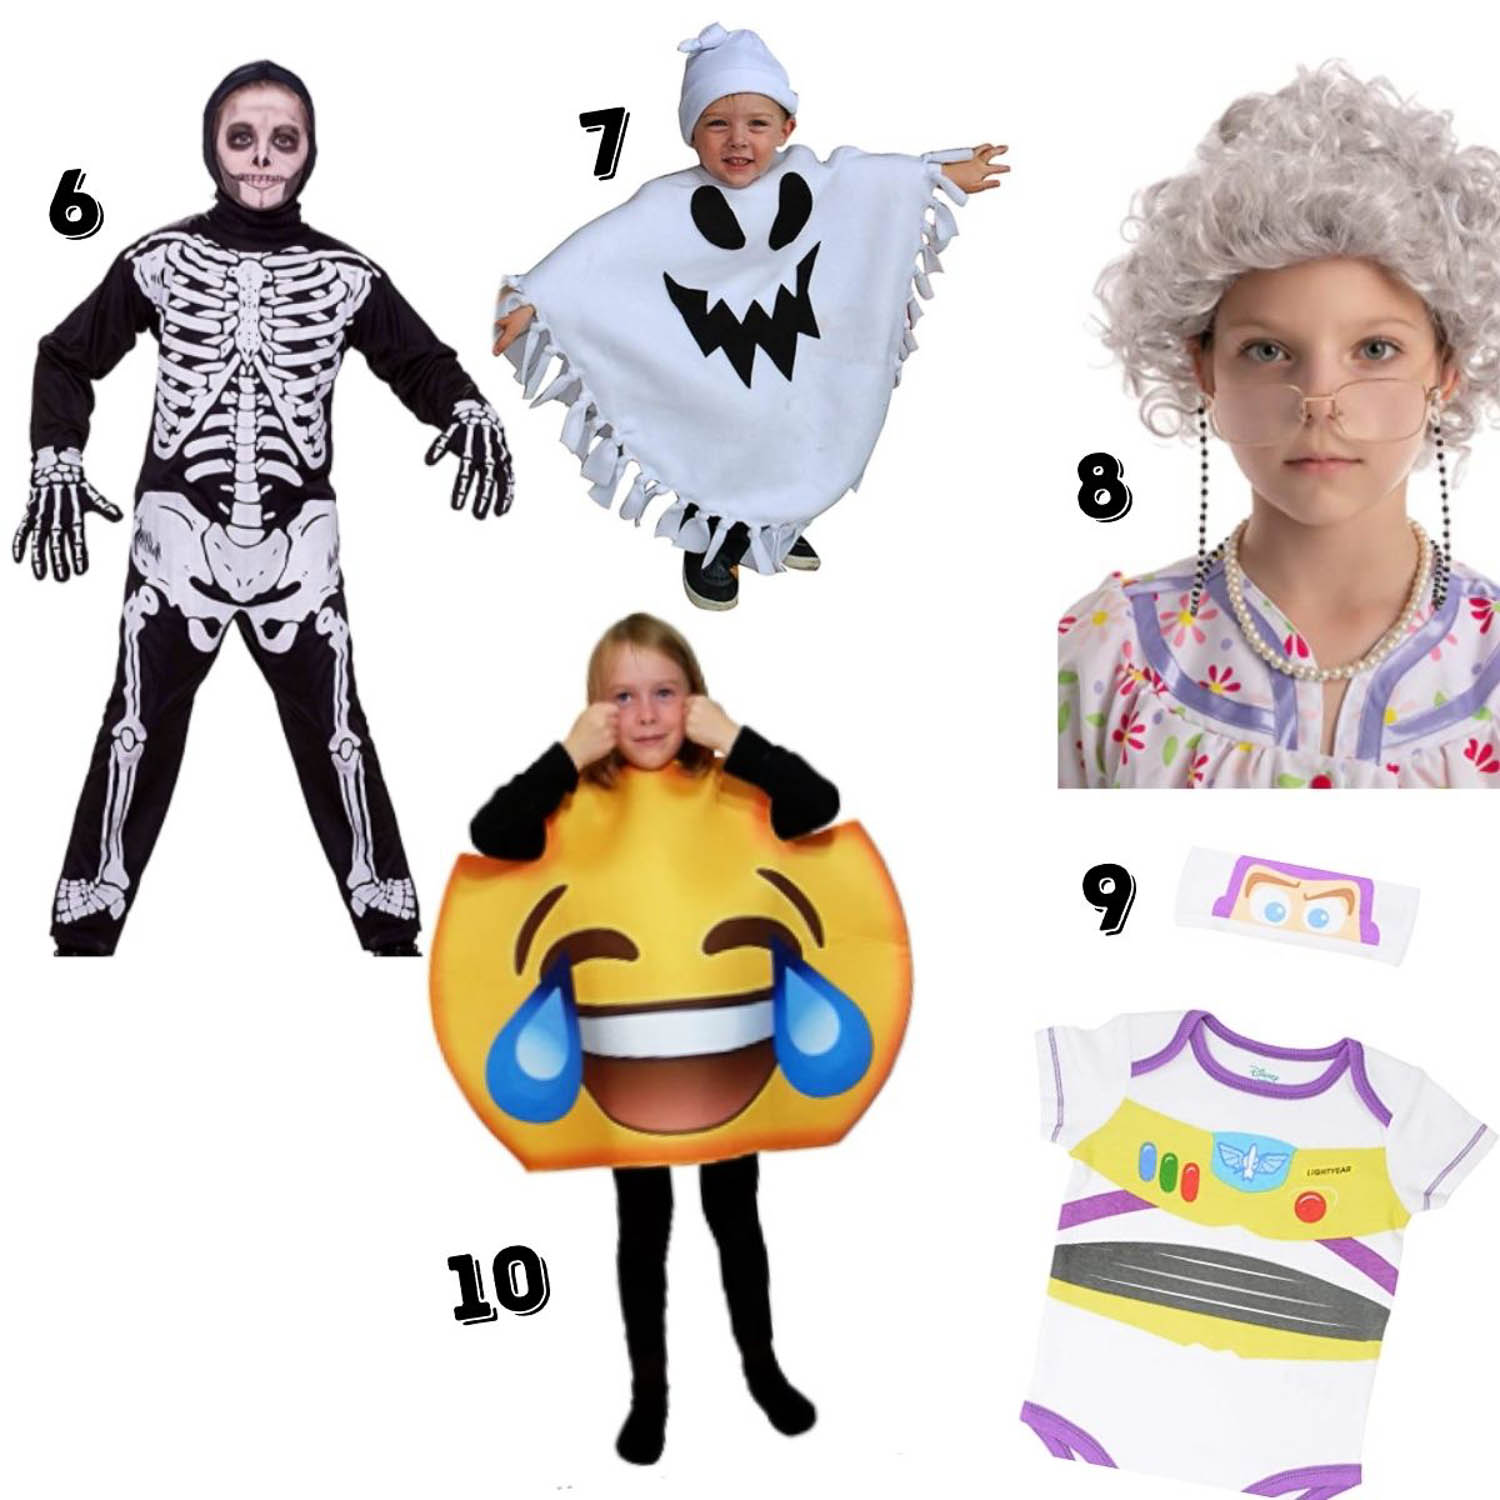 5 kid's Costumes - skeleton, ghost, old lady, Buzz Lightyear, and emoji.